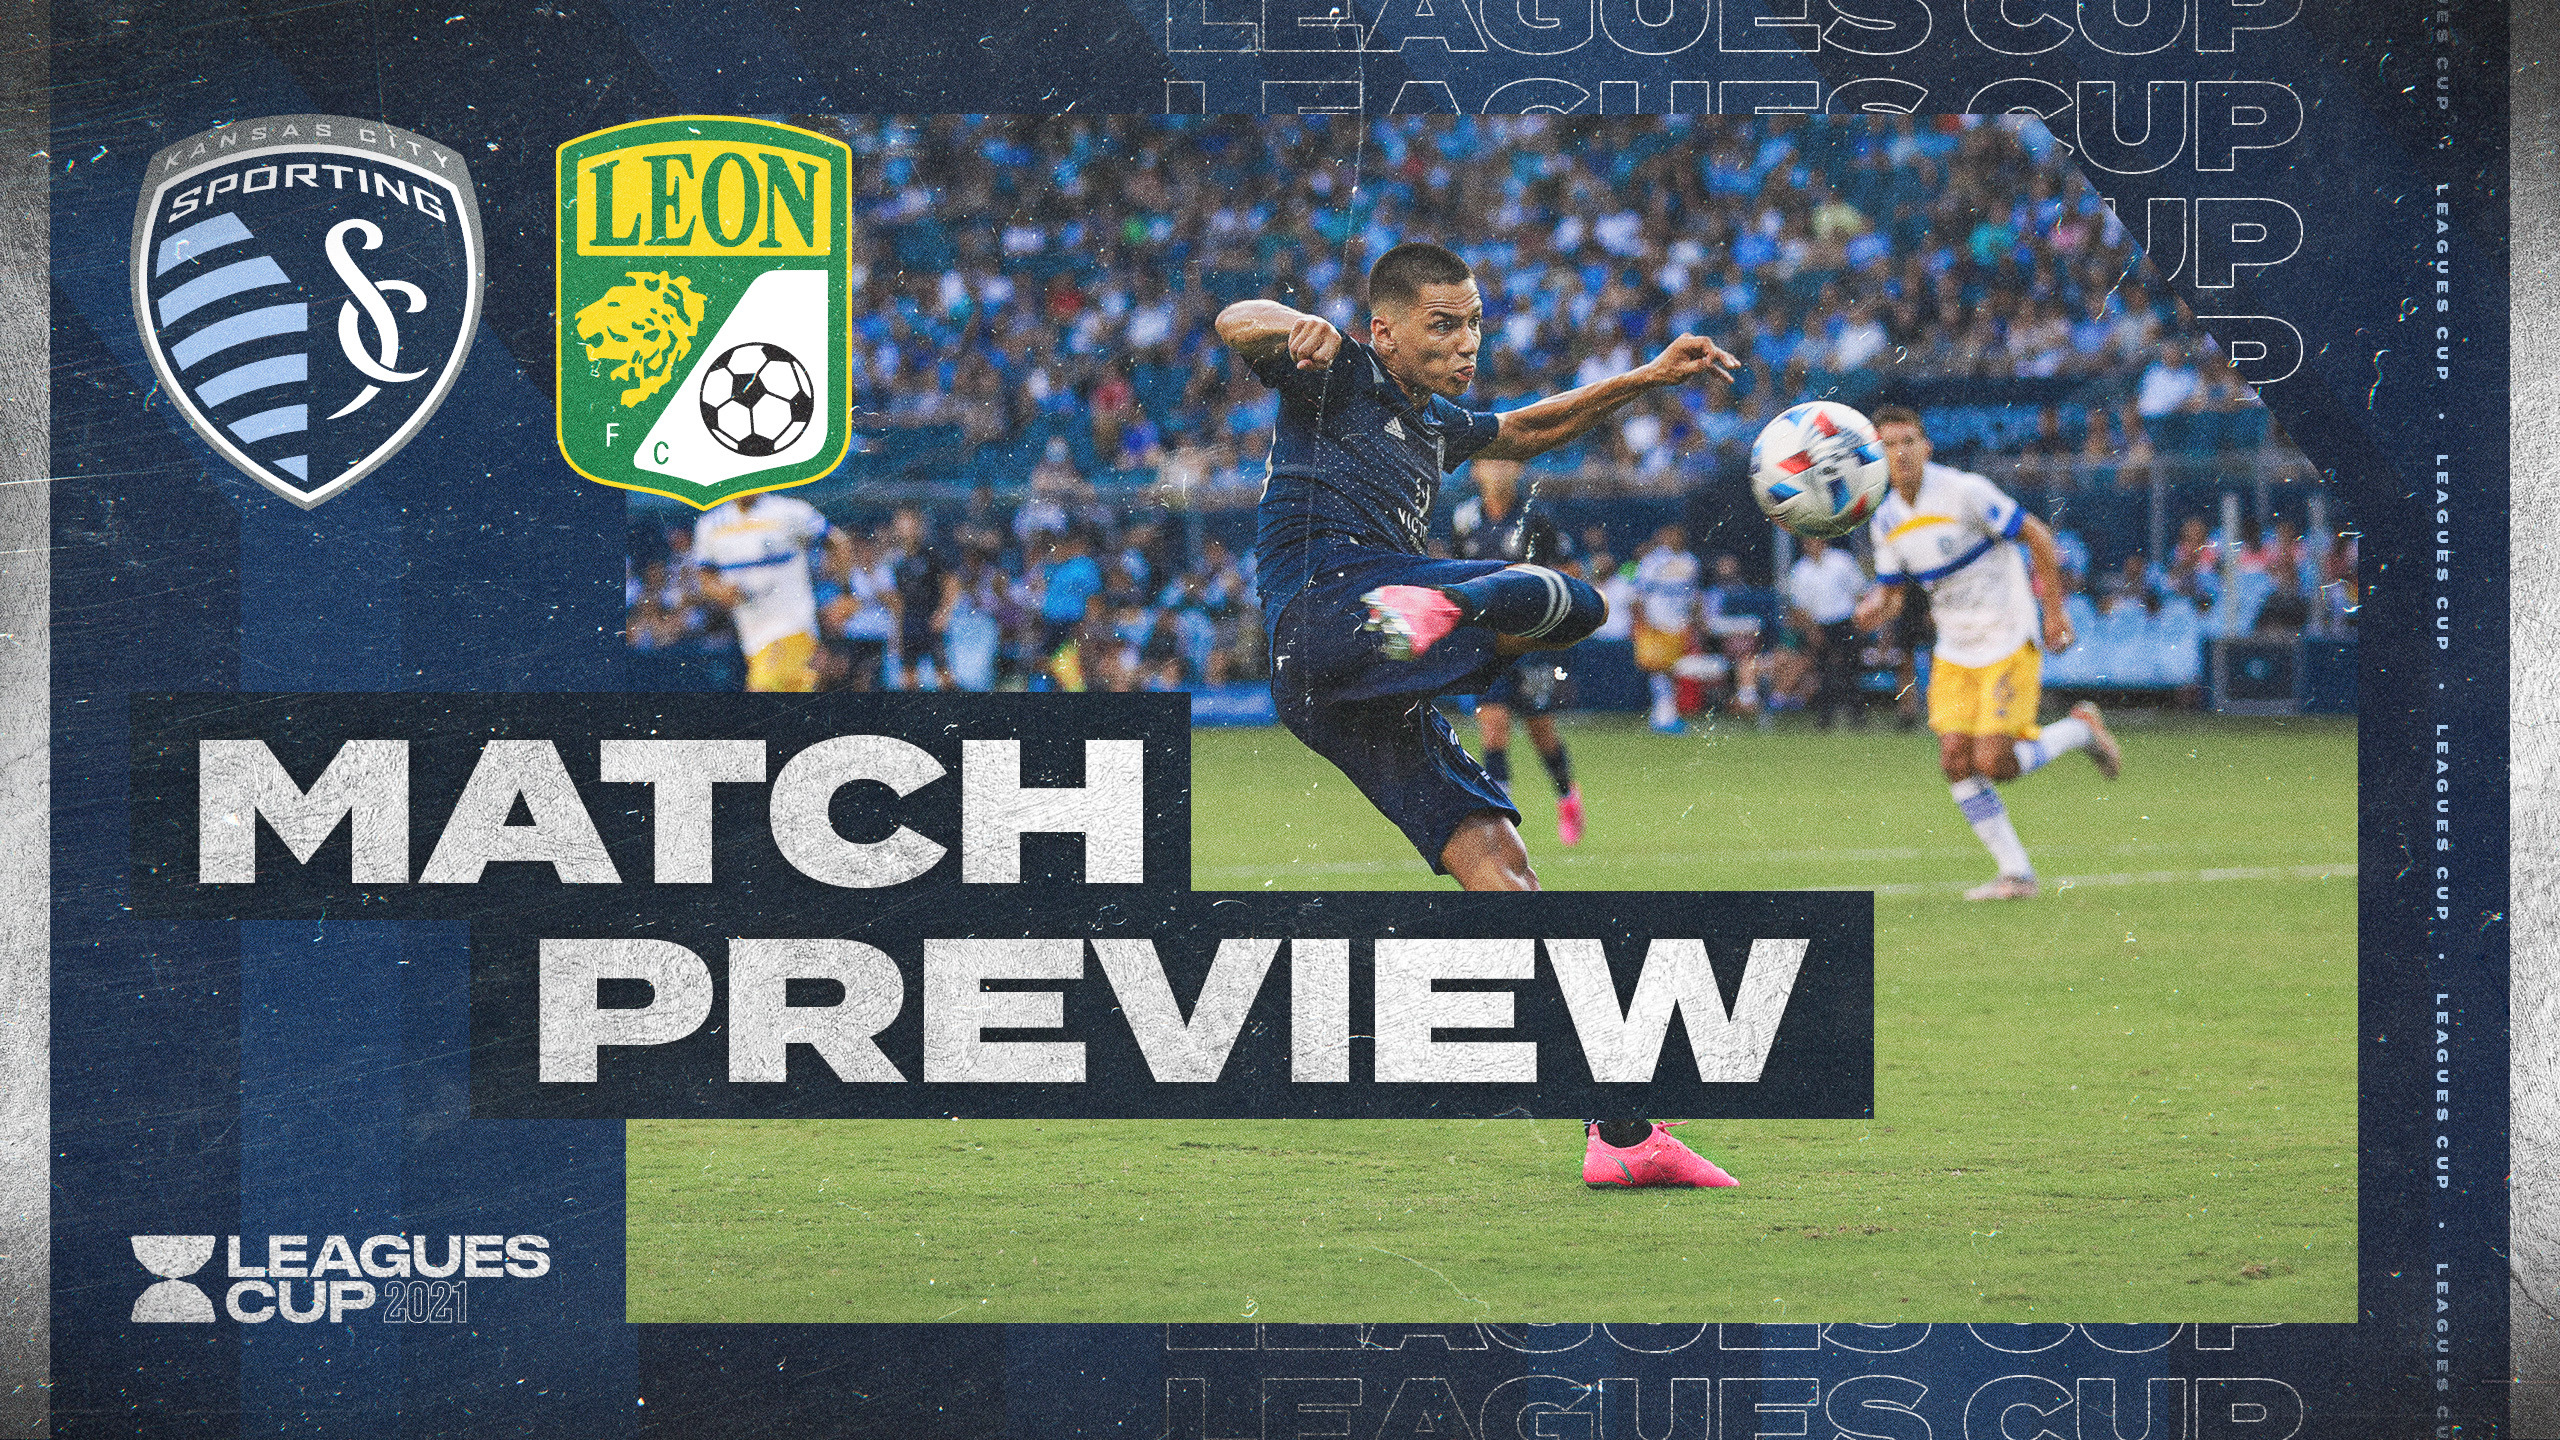 Leagues Cup Preview: Sporting and Club Leon to square off in quarterfinals   Sporting Kansas City